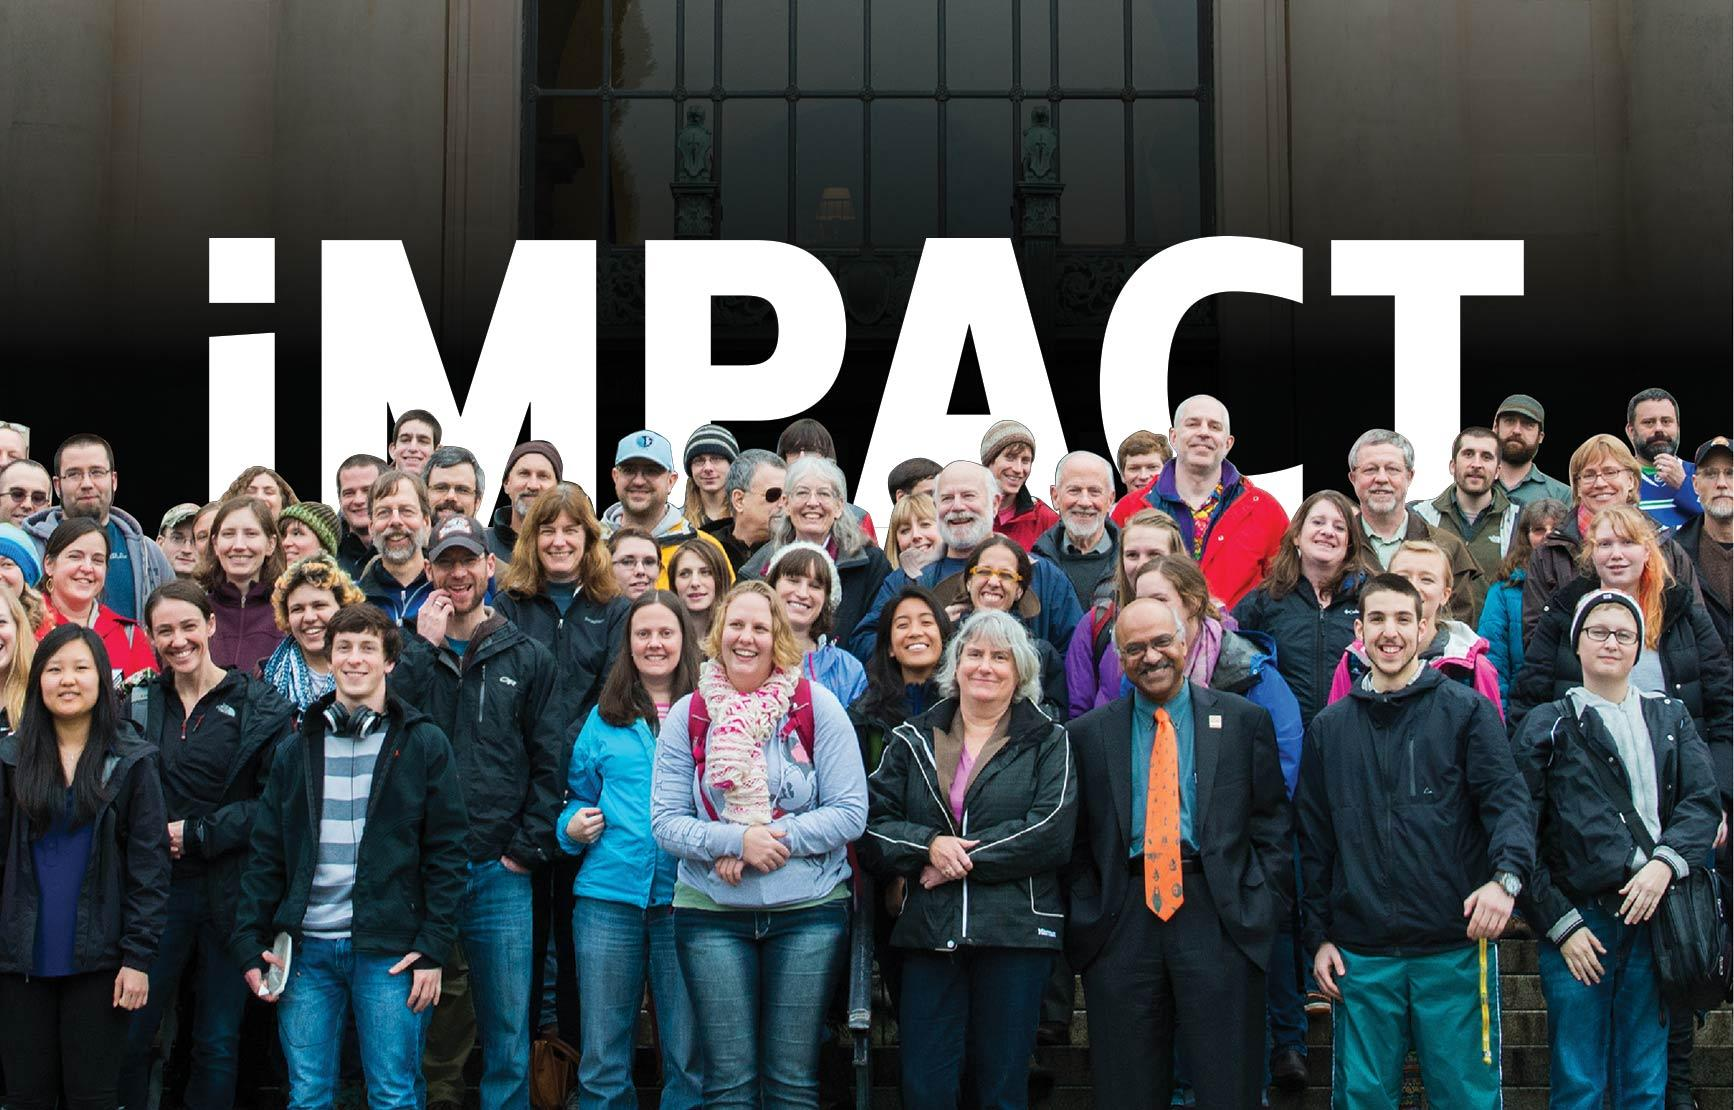 IMPACT title behind group photo of staff and faculty on Memorial Union steps